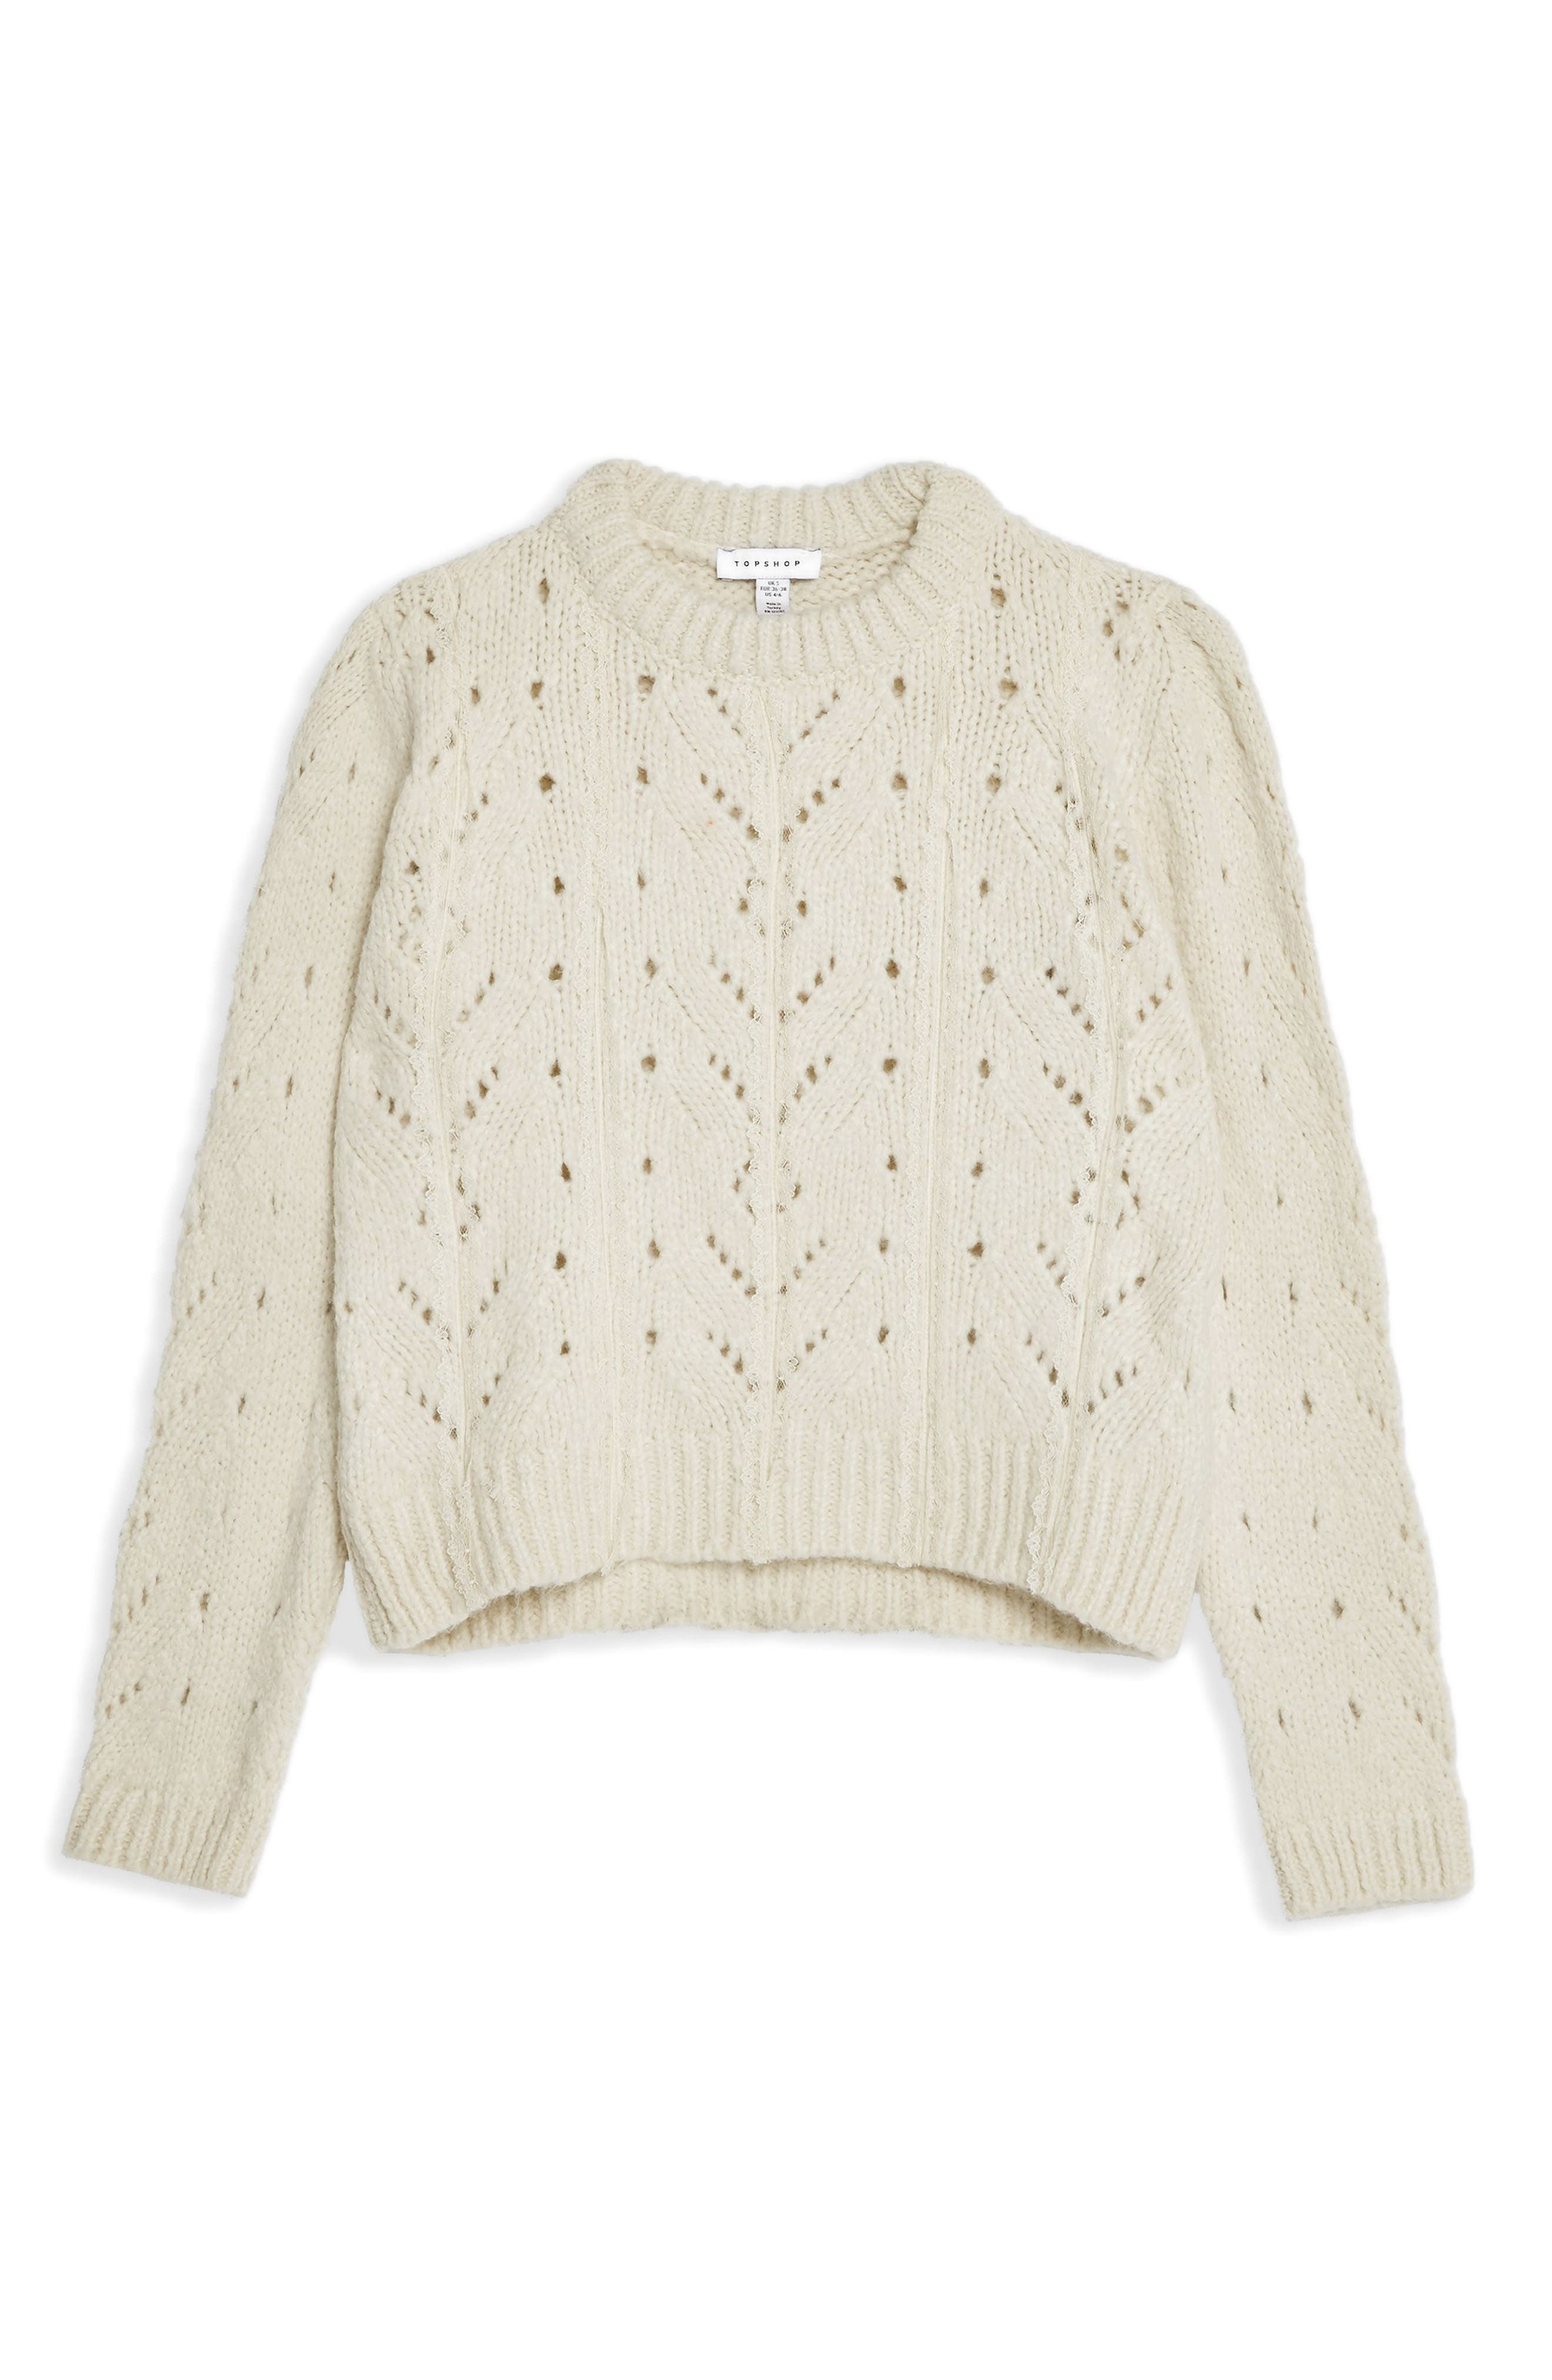 Pointelle Lace Sweater,                             Alternate thumbnail 3, color,                             IVORY